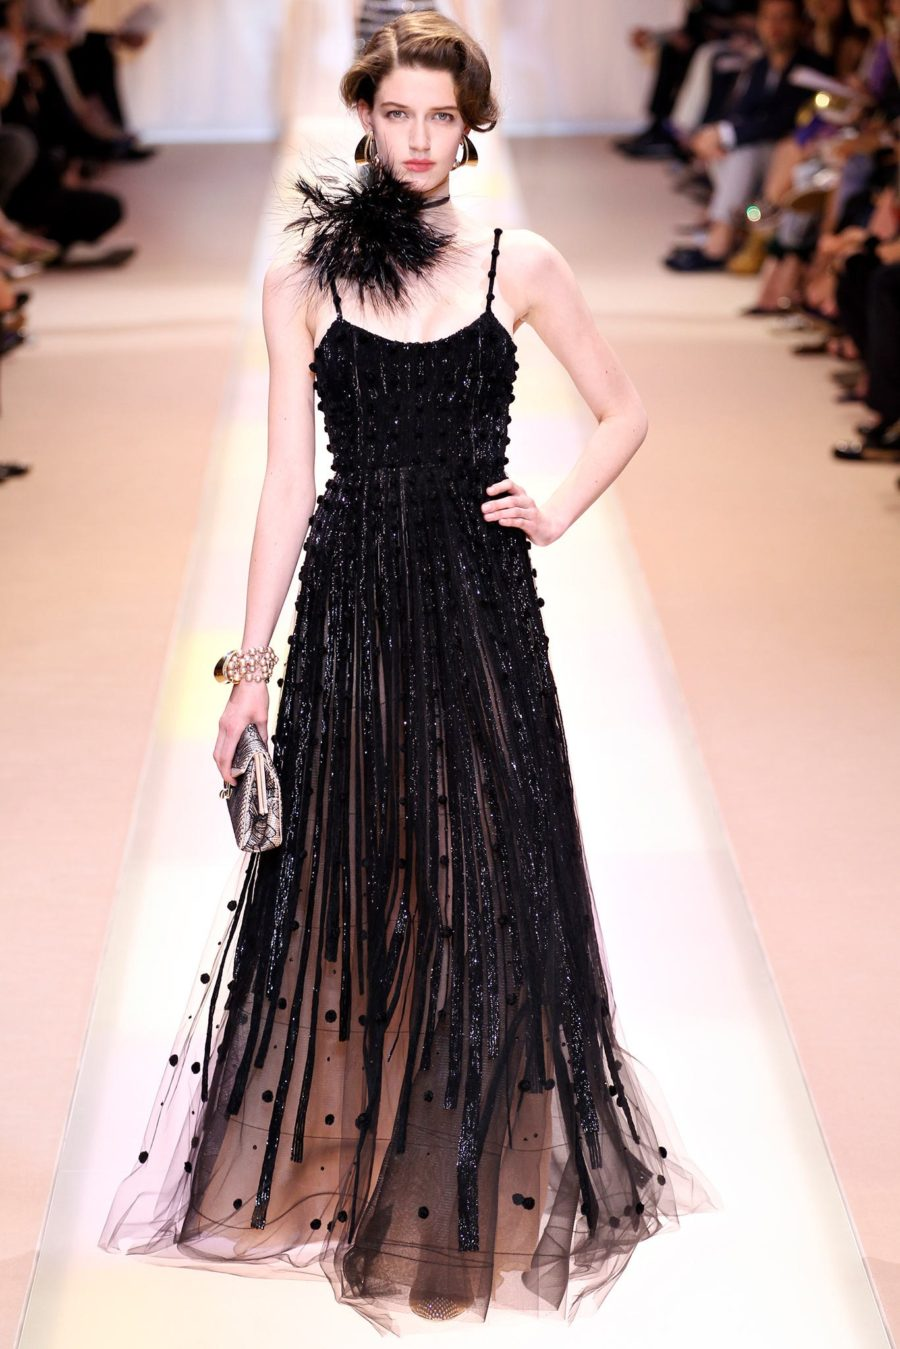 Fall Hairstyles Off the Runway I Armani Prive Couture Romantic Curls #Hairstyles #Armani #runway